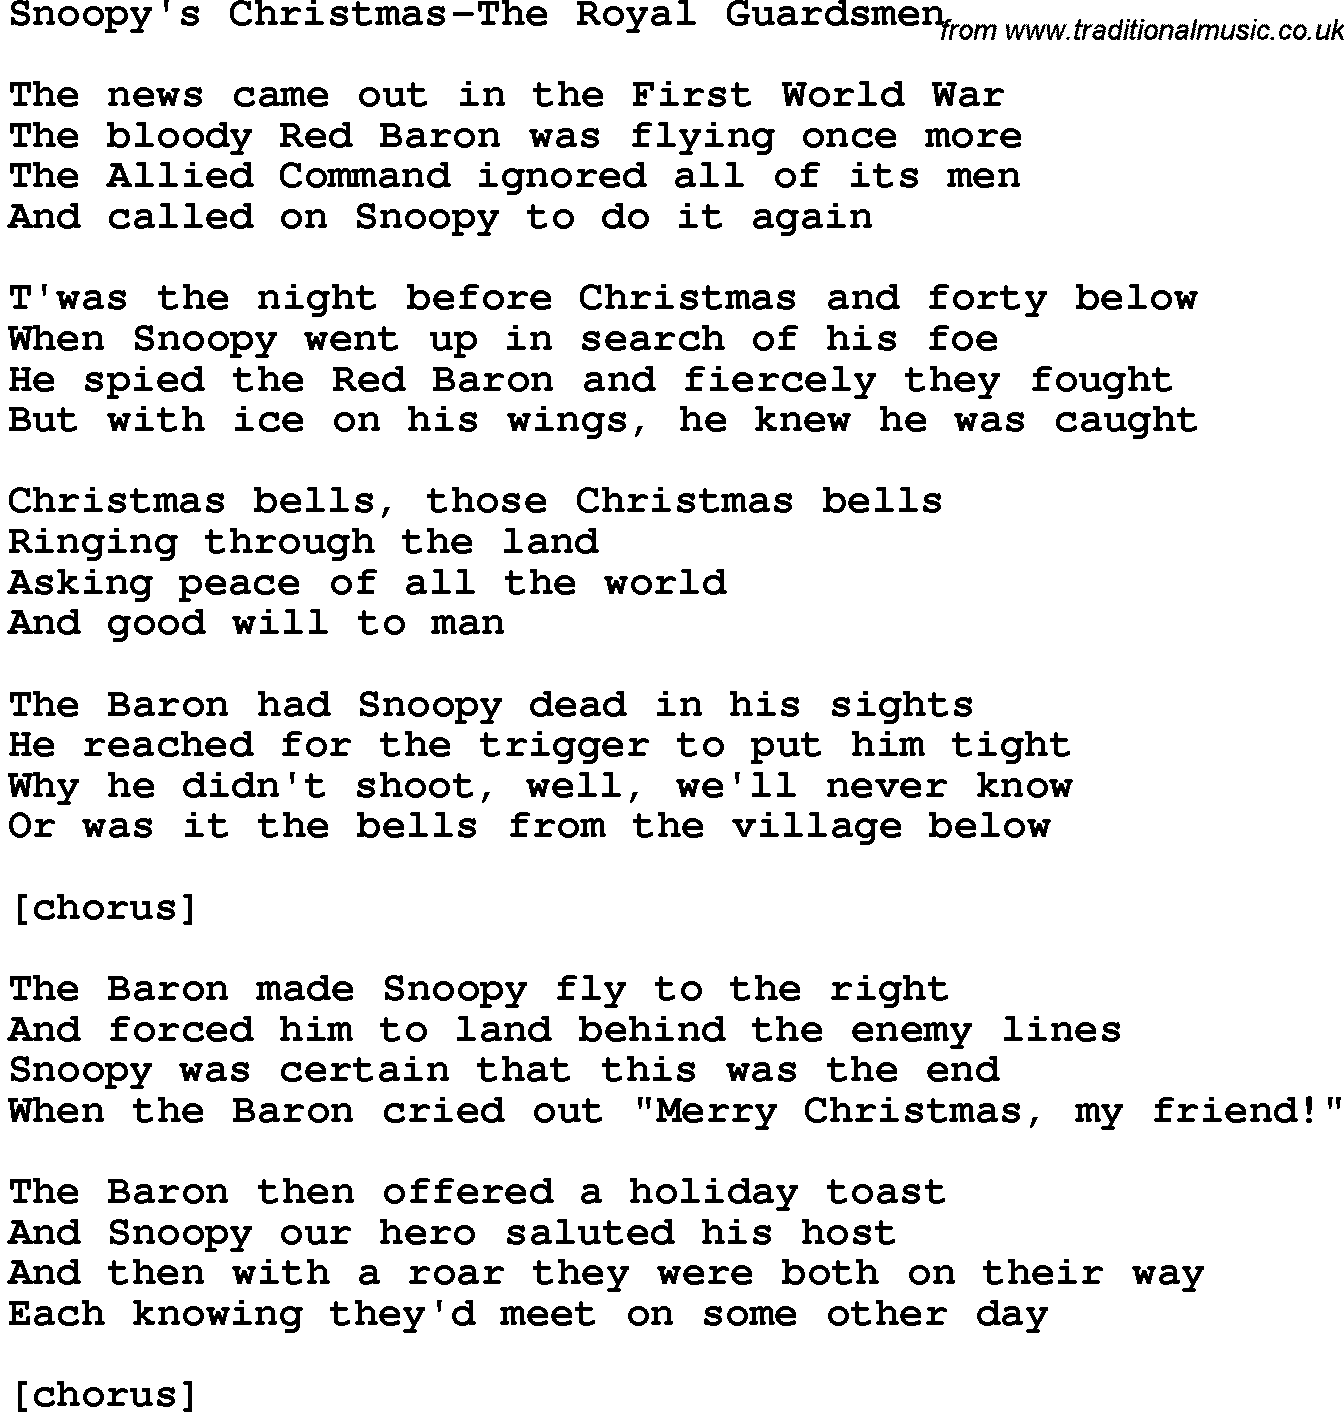 novelty song snoopys christmas the royal guardsmen lyrics - Snoopy Christmas Song